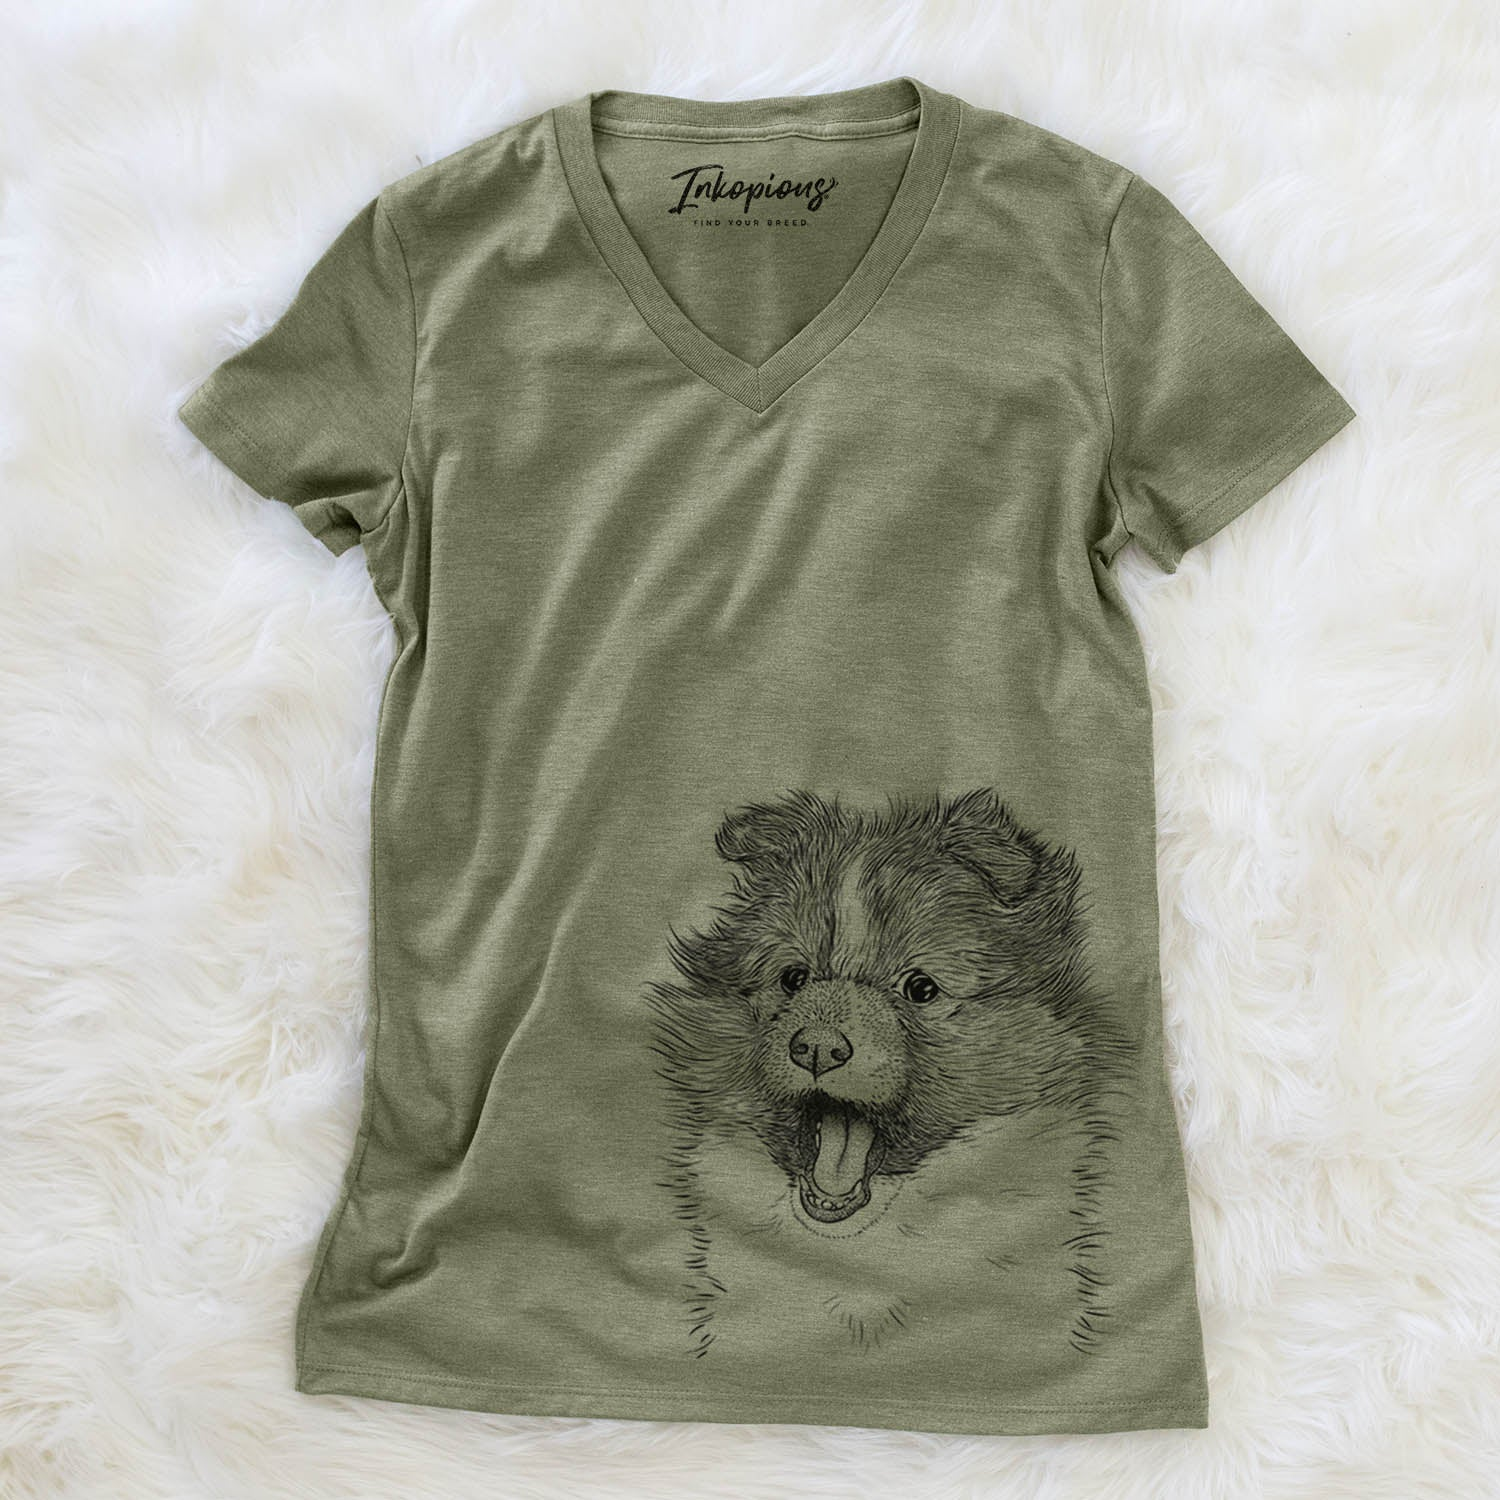 Dylan the Shetland Sheepdog - Women's Modern Fit V-neck Shirt